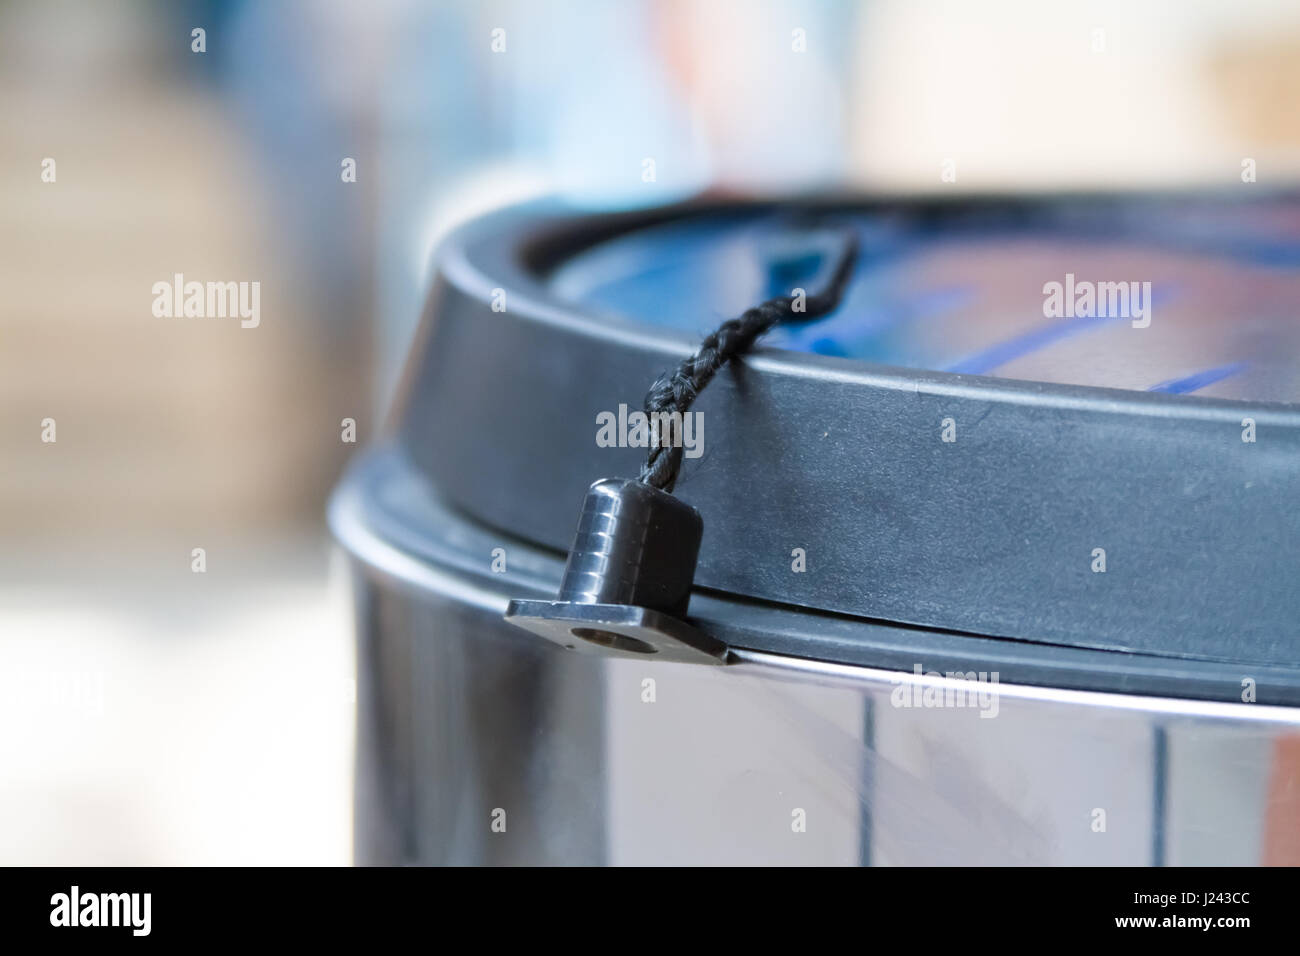 Open Trash Can Stock Photos & Open Trash Can Stock Images - Alamy